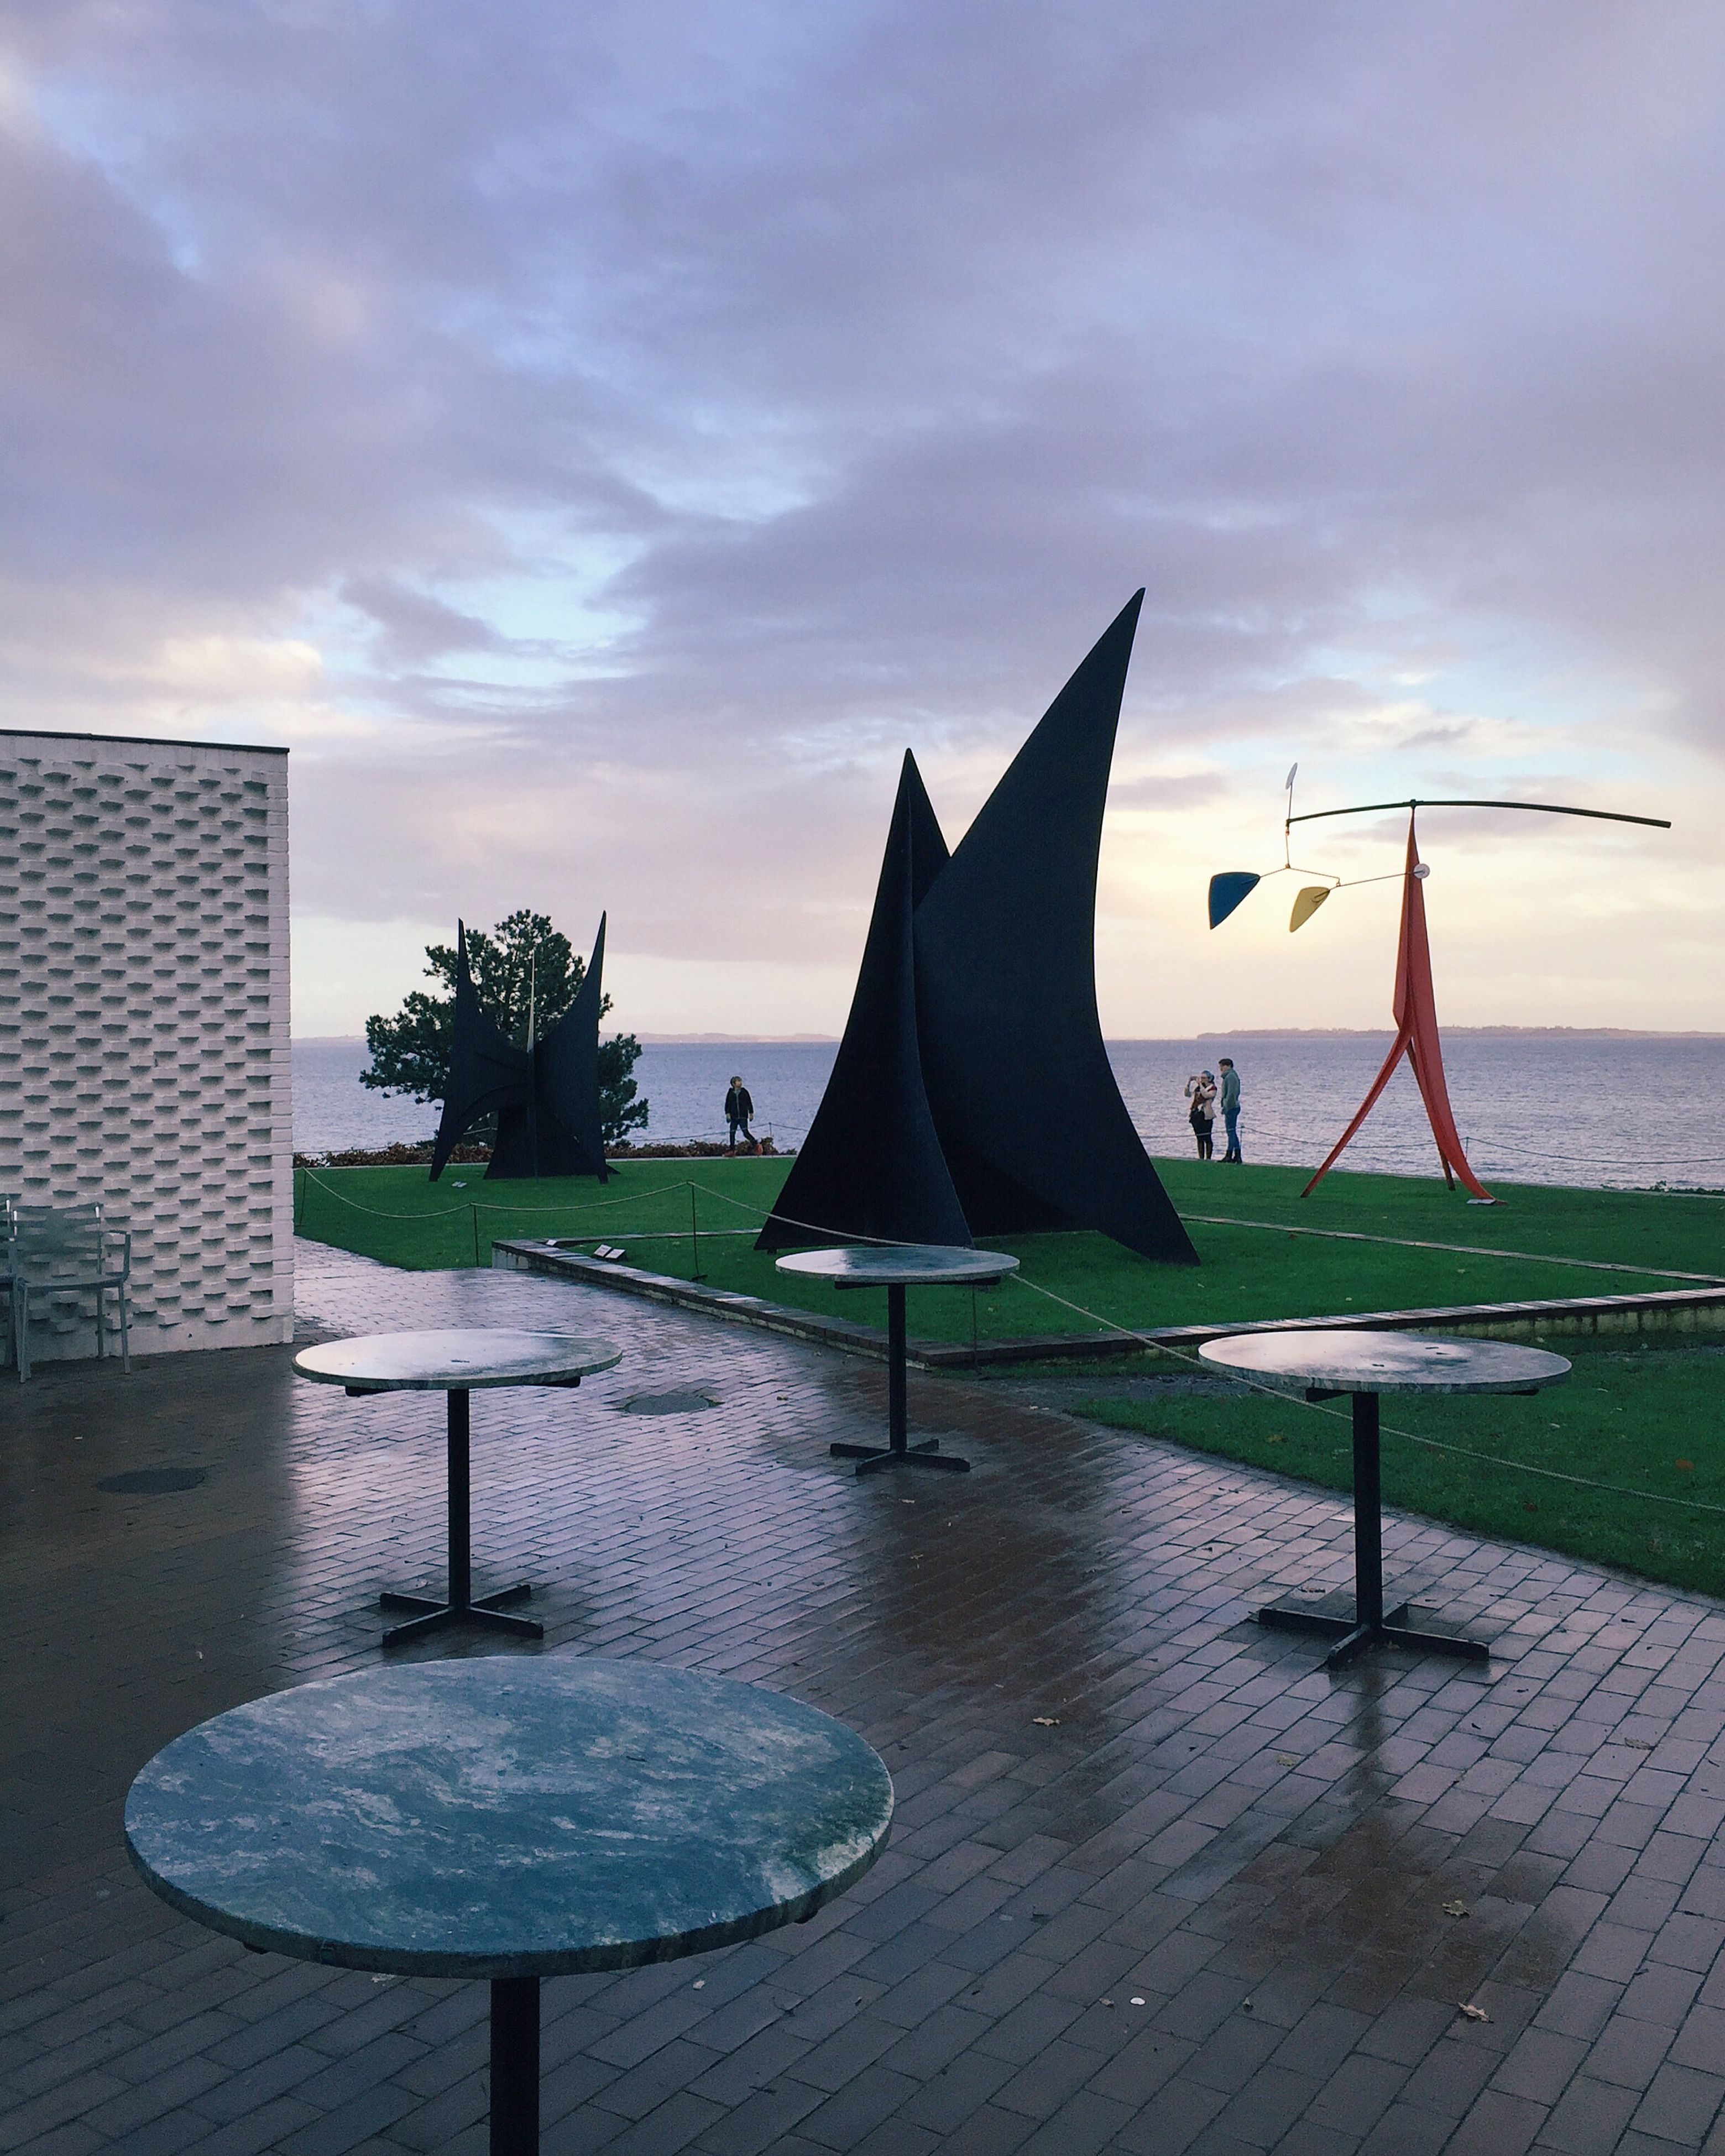 sky, water, sea, cloud - sky, built structure, cloud, nature, beach, architecture, sunlight, chair, tranquility, outdoors, horizon over water, absence, tree, cloudy, parasol, building exterior, sunset